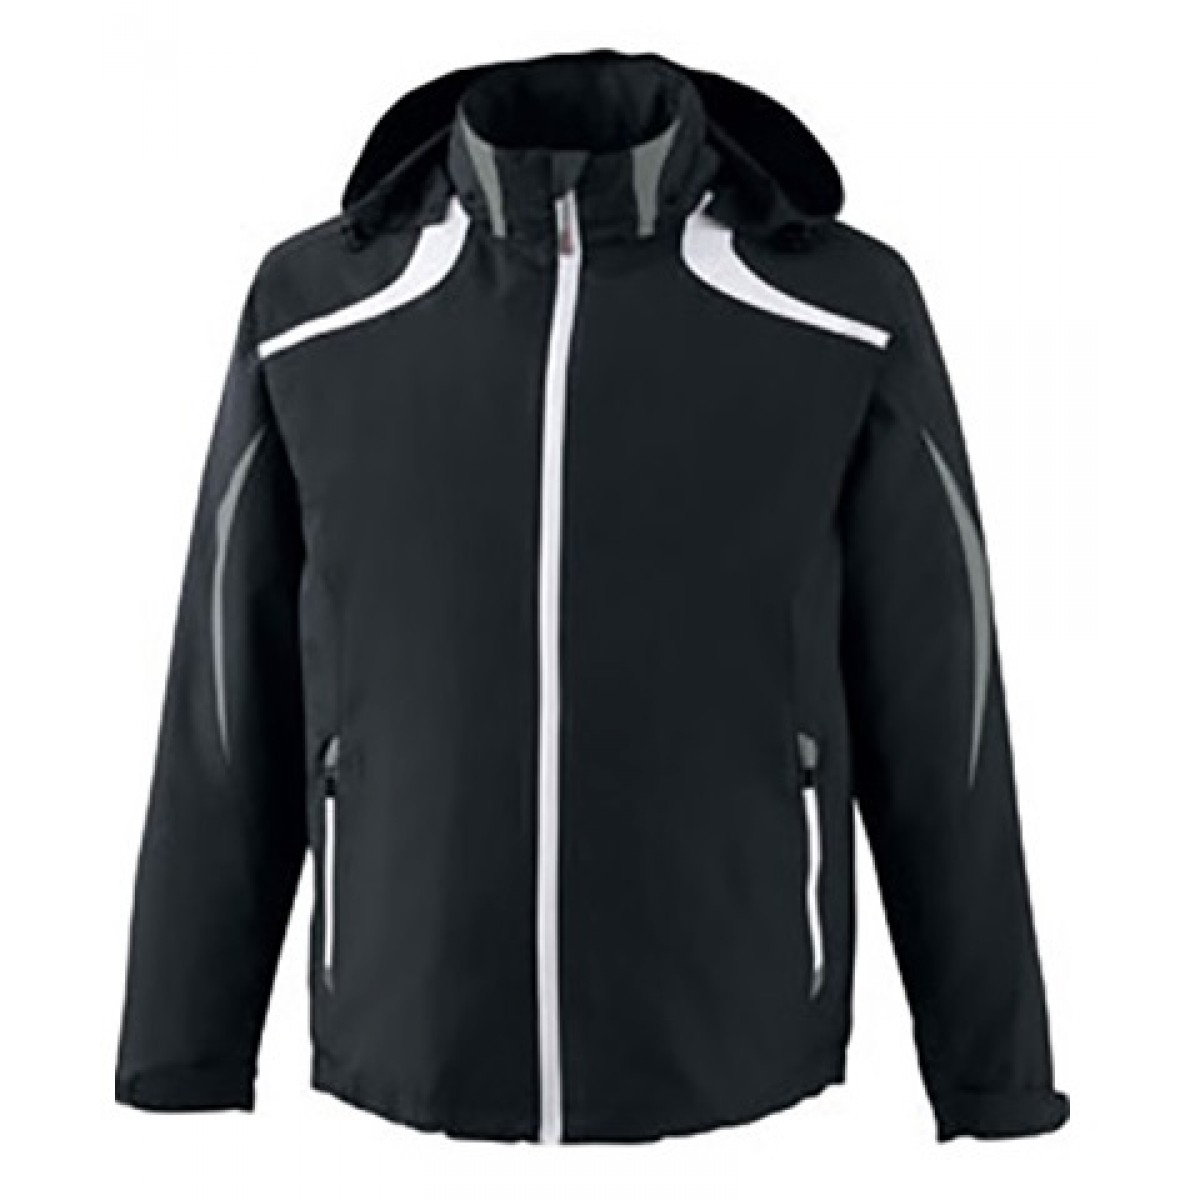 North End Men's Impact Active Lite Colorblock Jacket-Black-M